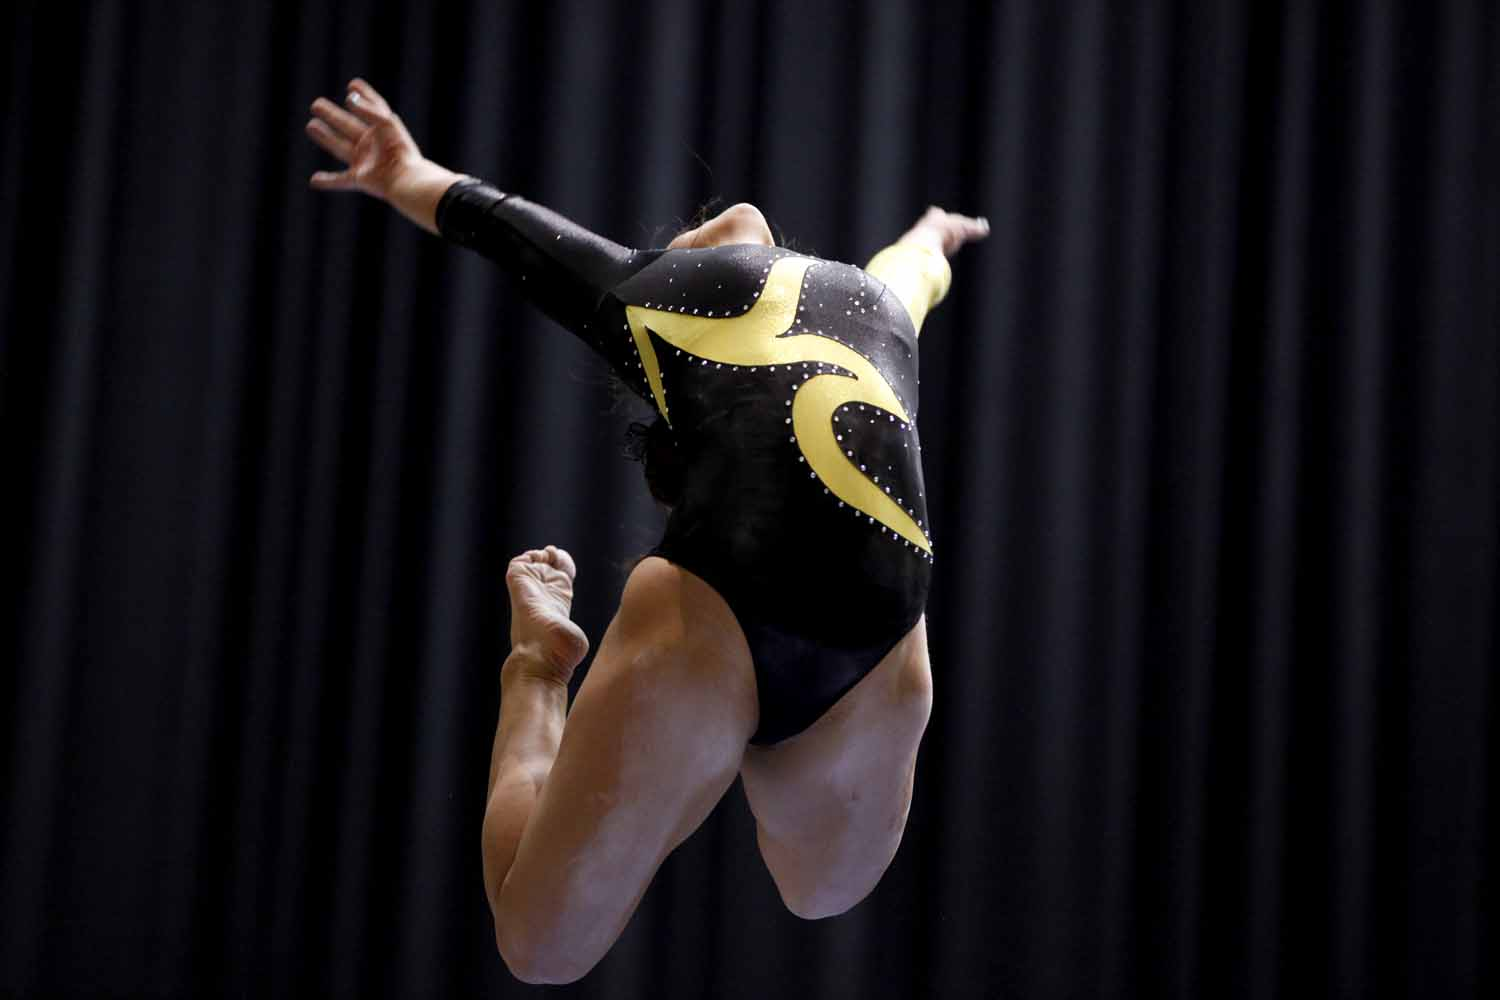 Mizzou freshman Brooke Kelly jumps into a pose during her performance on the balance beam Friday evening, Feb. 19, 2016 at the Hearnes Center.